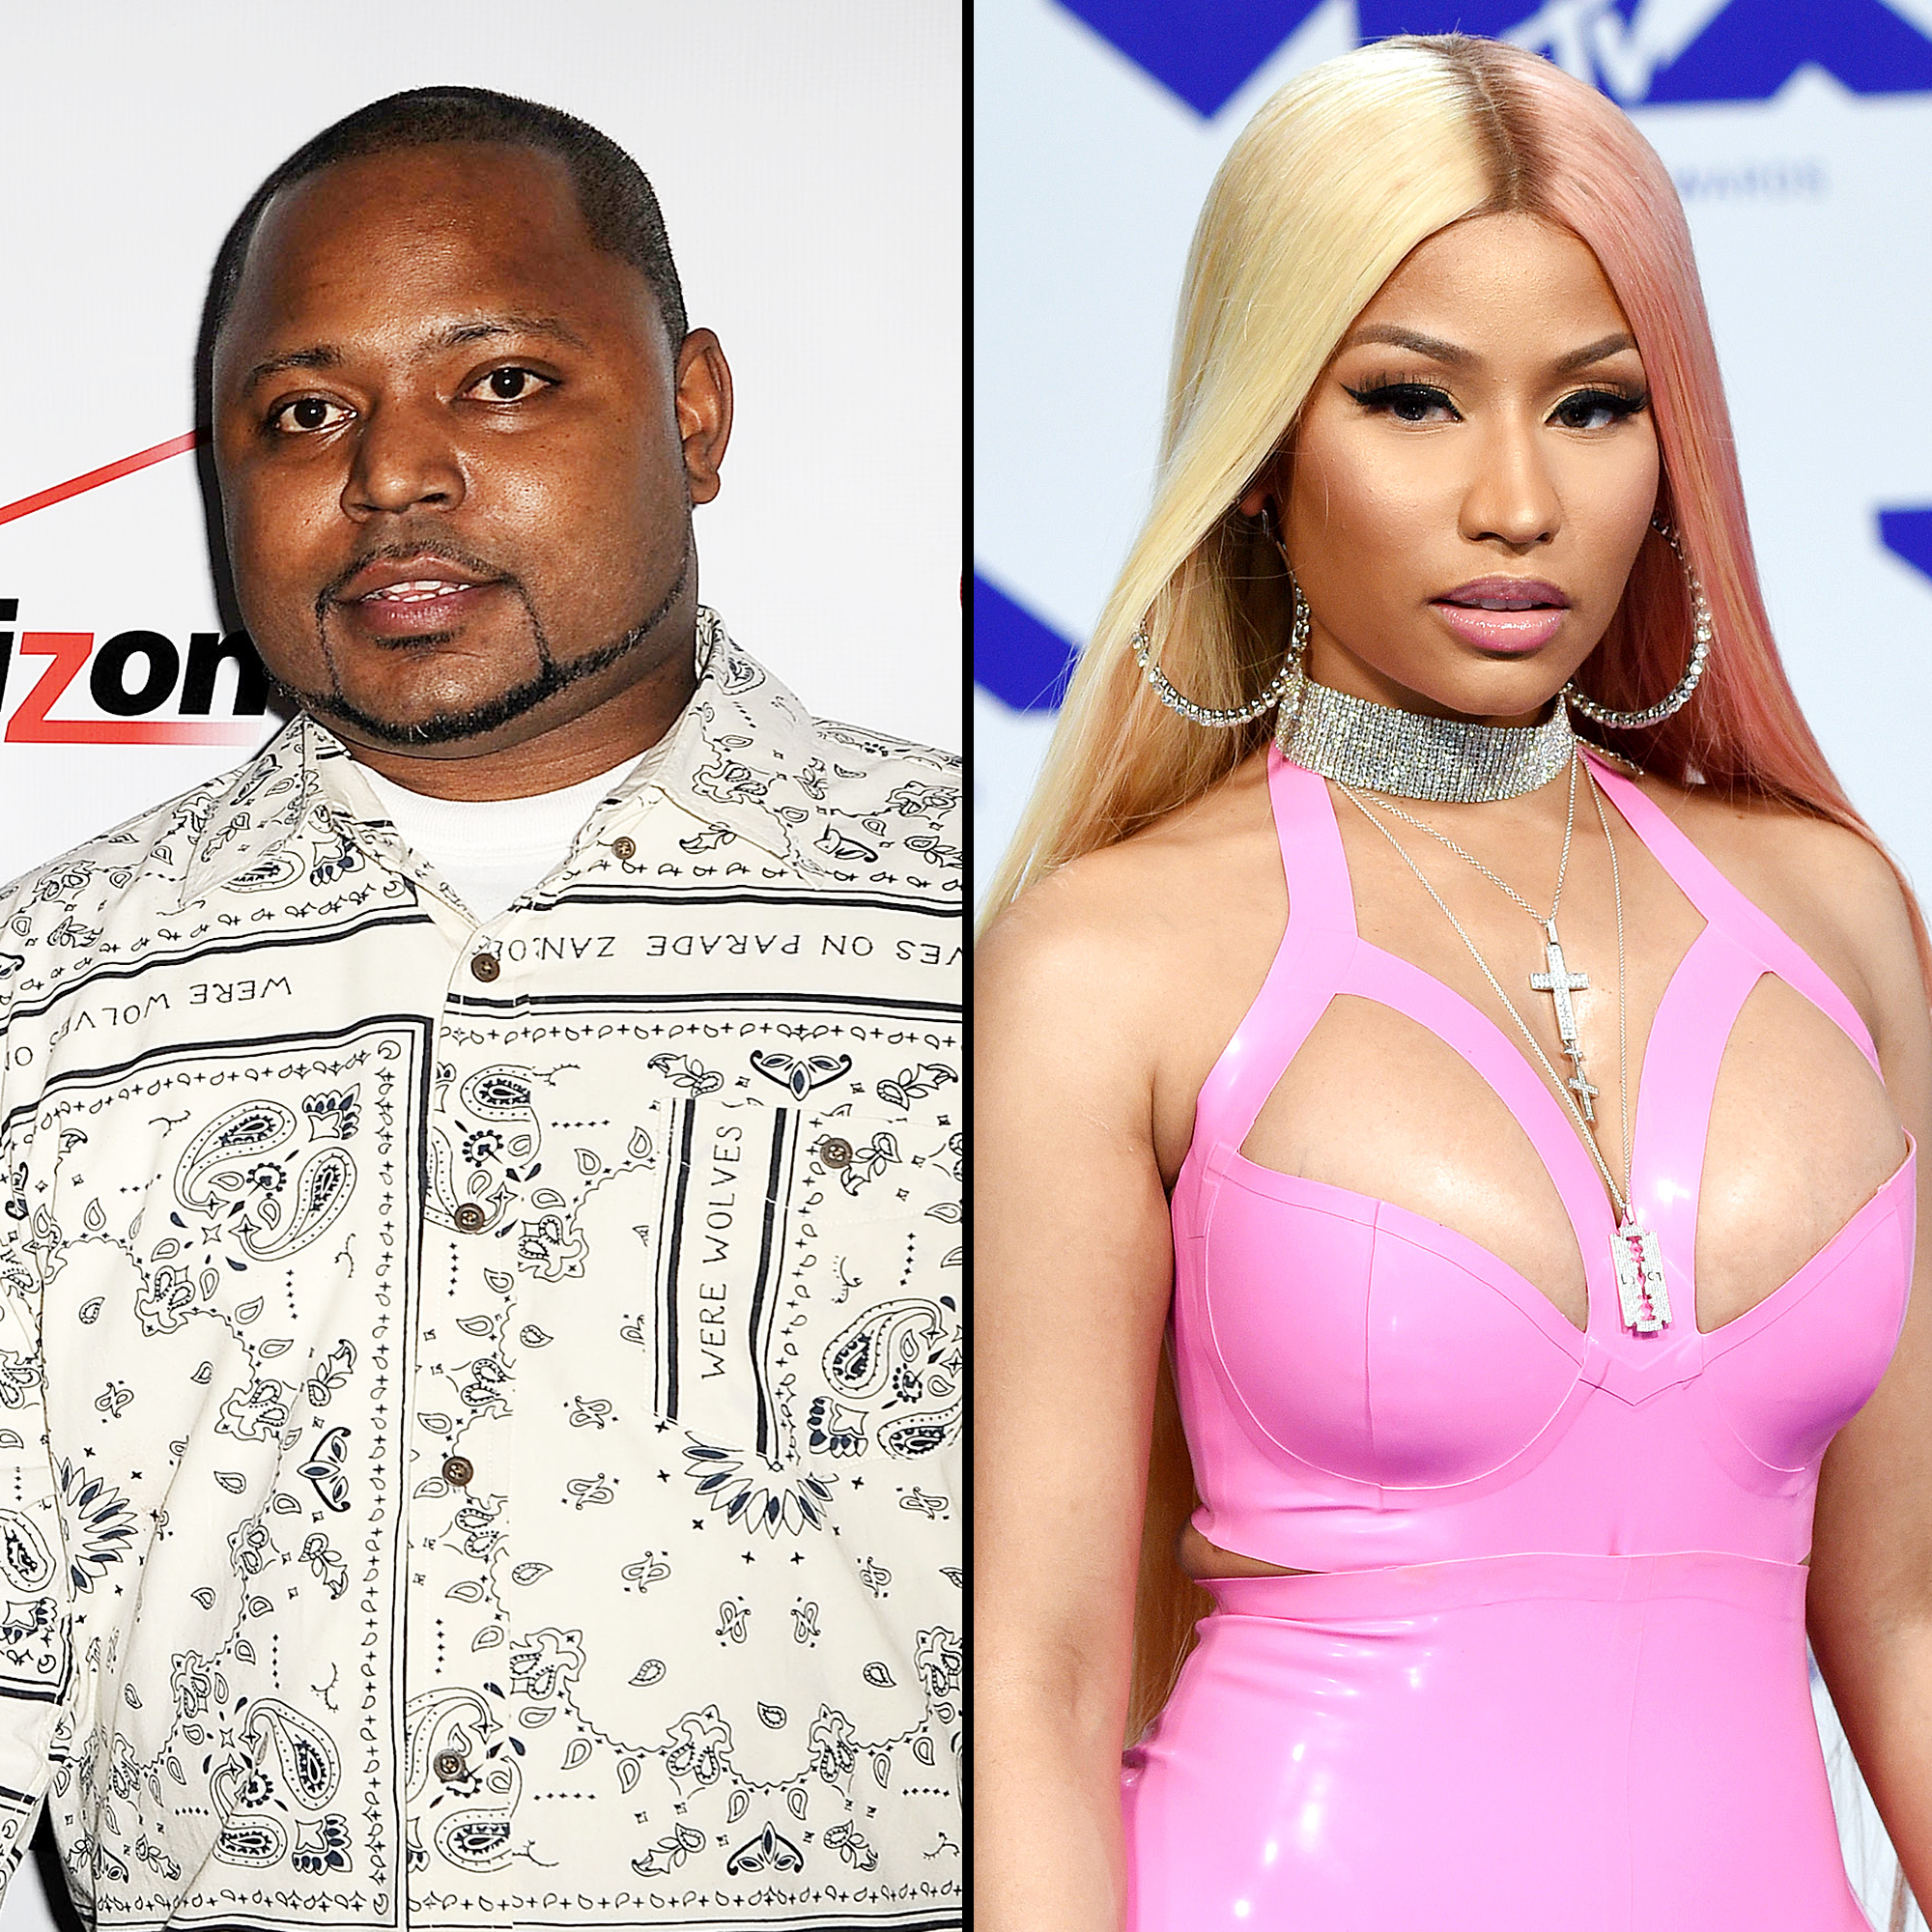 Nicki Minaj's Brother Jelani Maraj Found Guilty of Child Rape